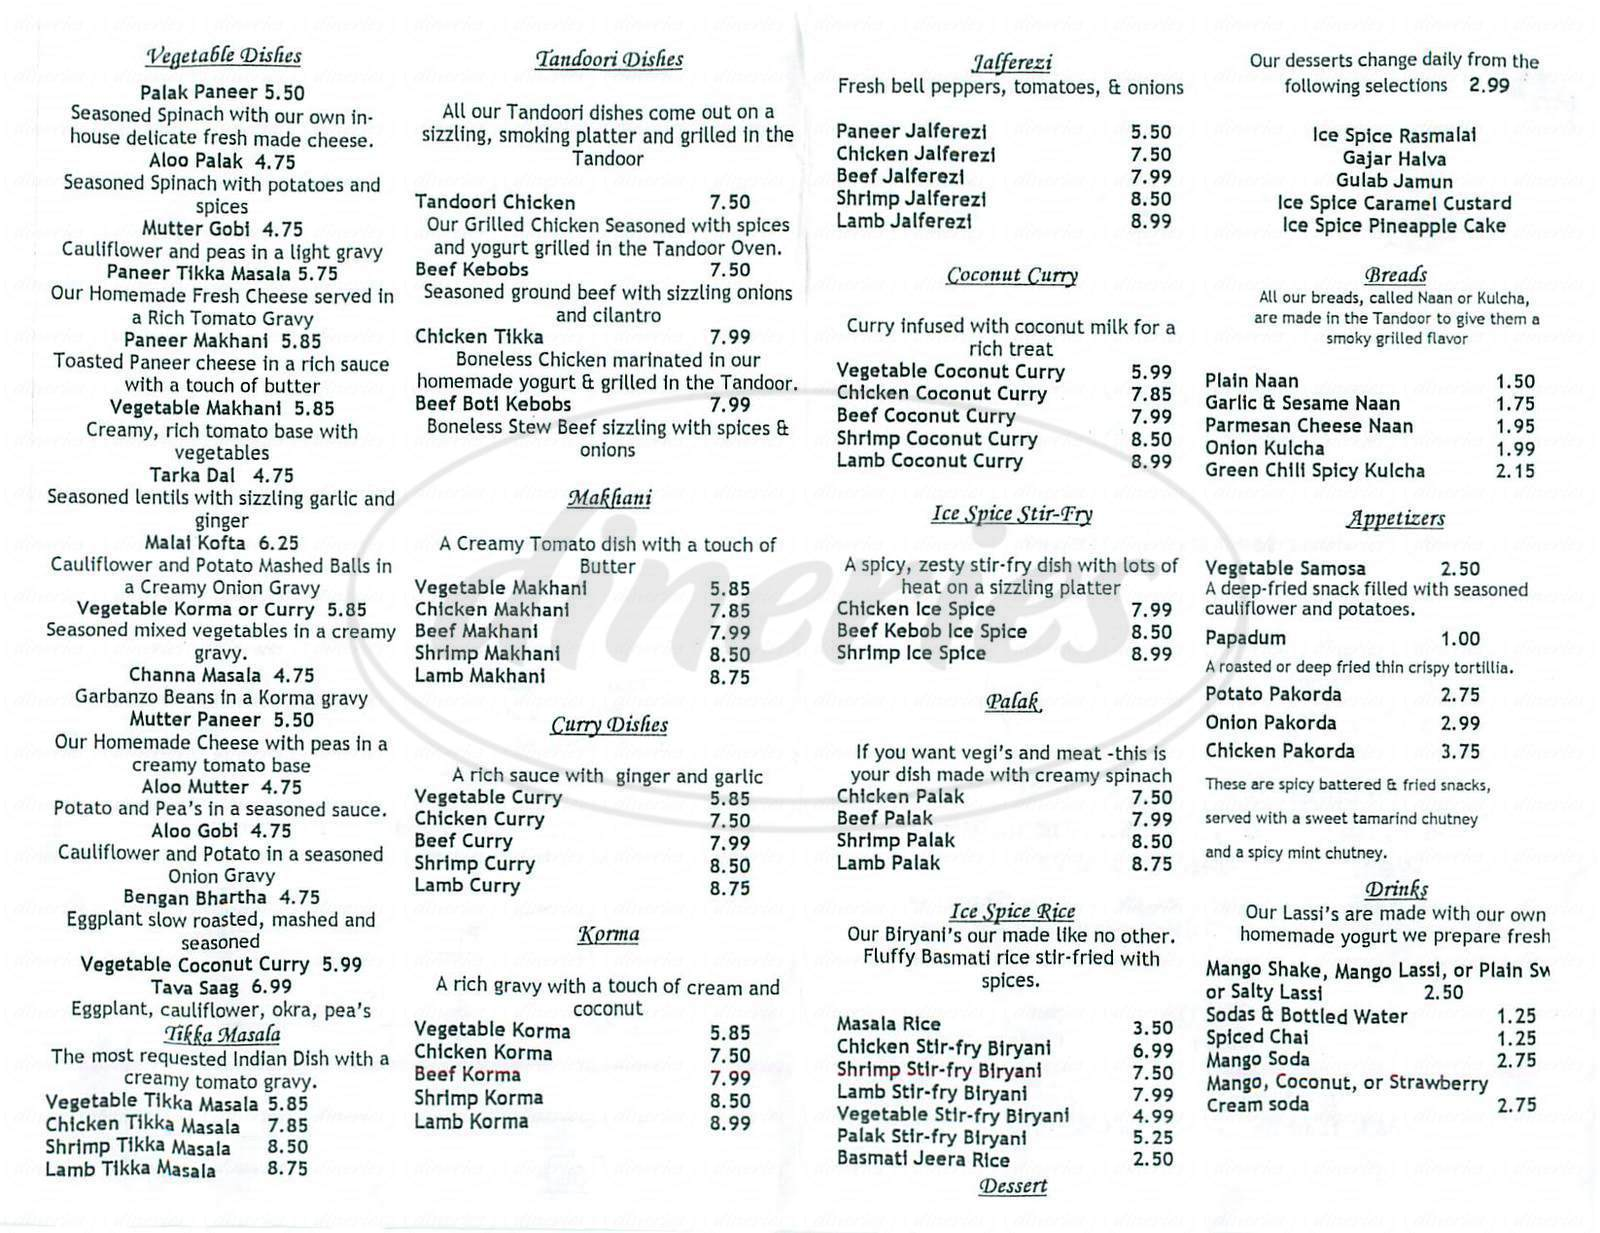 menu for Ice Spice Indian Cuisine